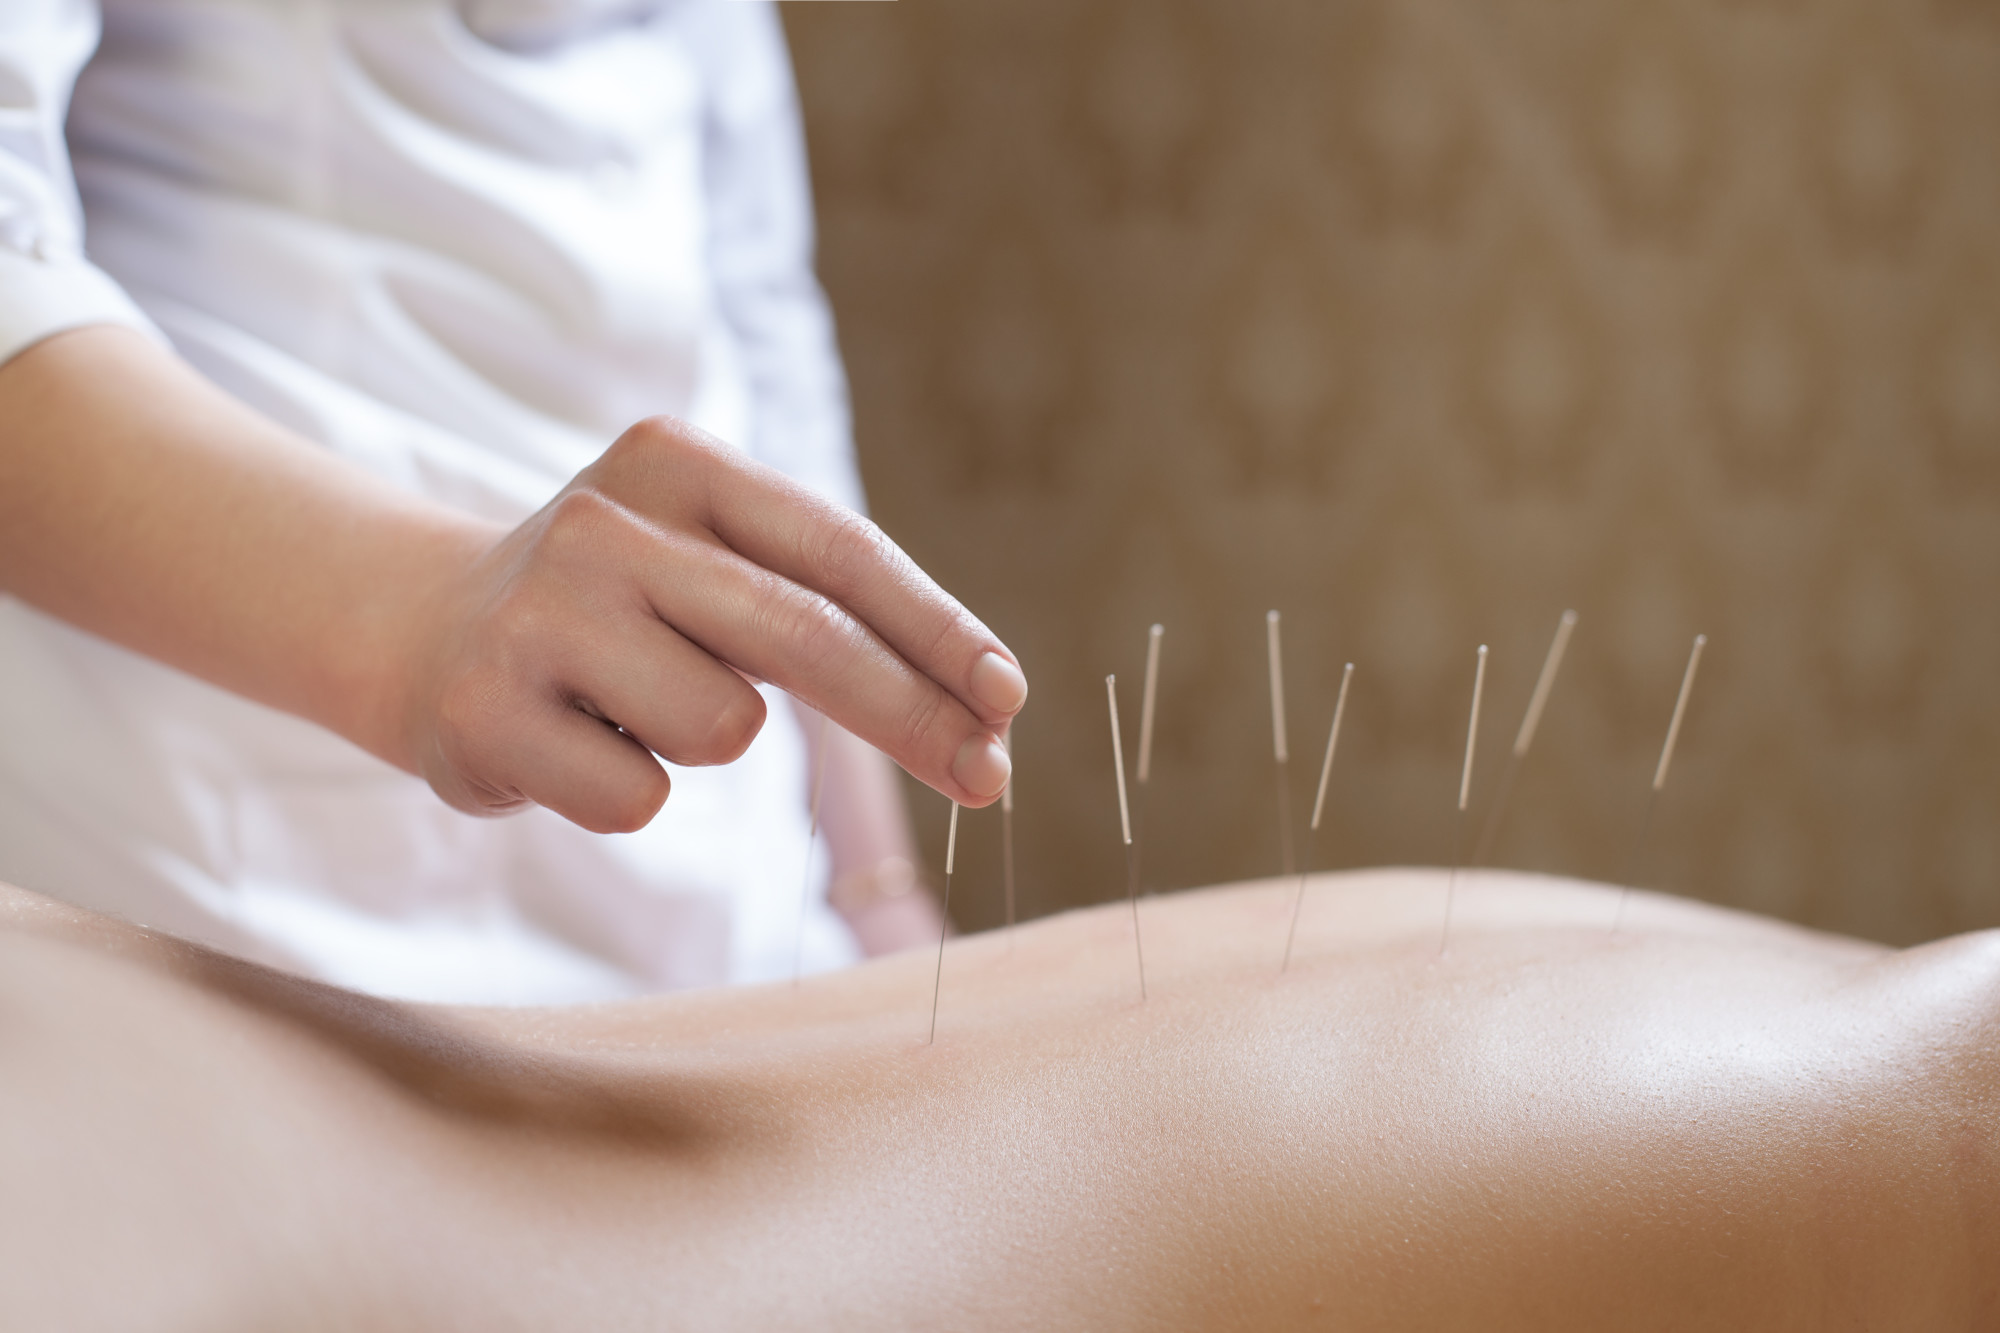 9 Impressive Health Benefits of Acupuncture